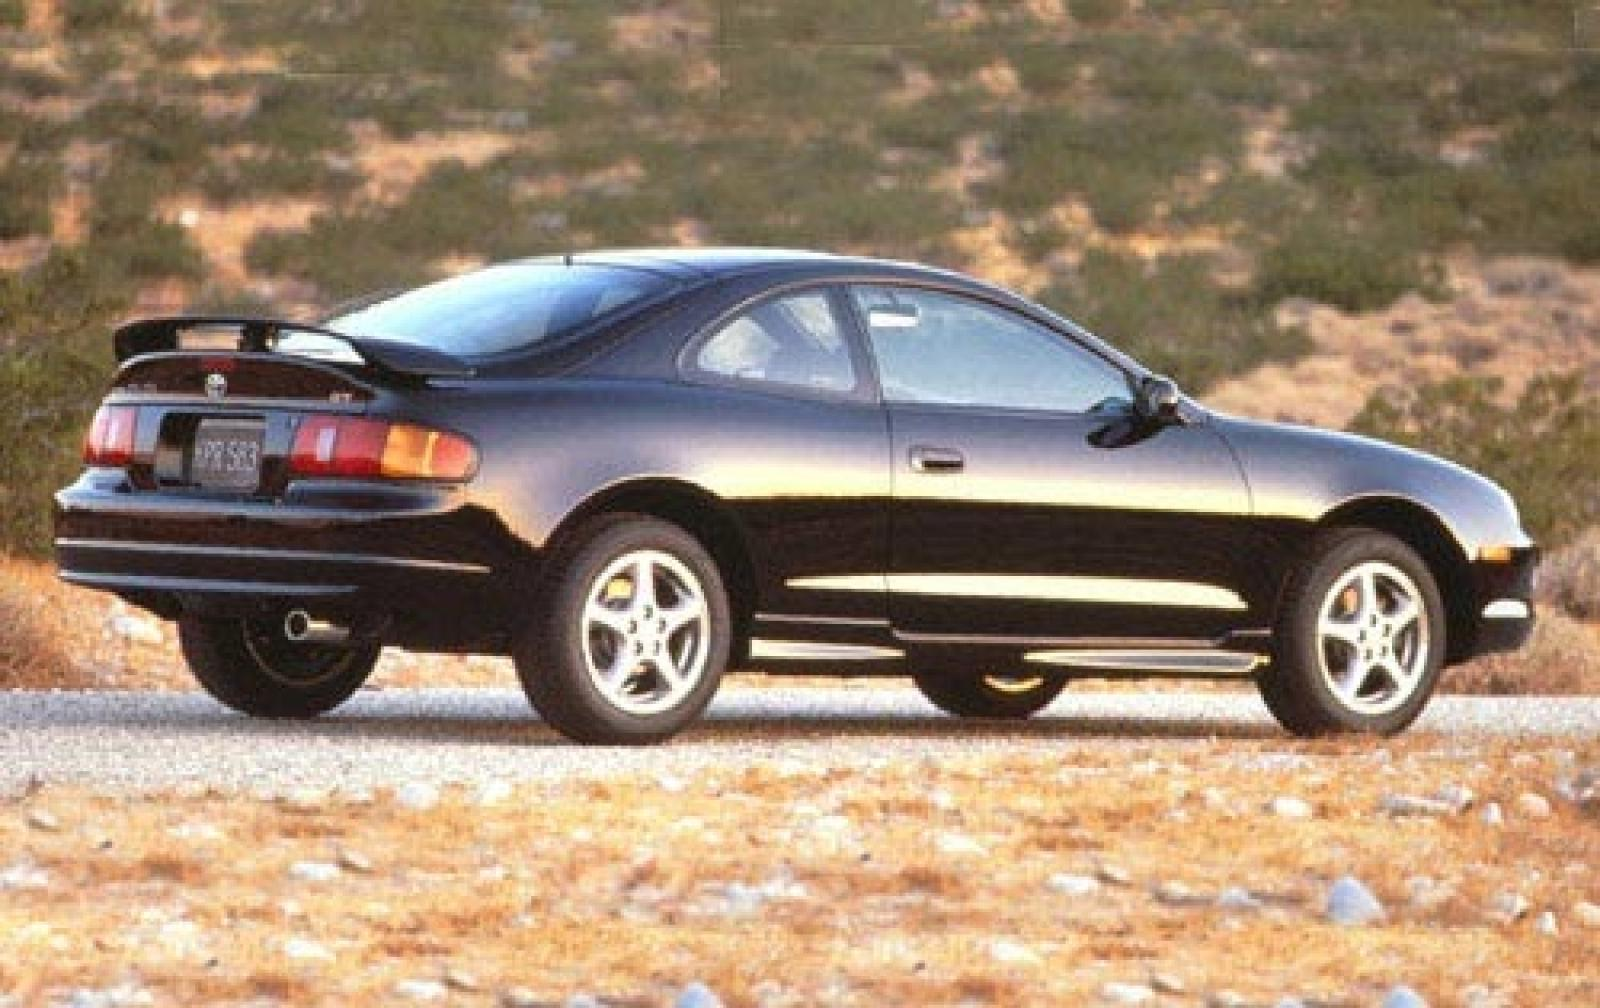 1999 toyota celica information and photos zombiedrive. Black Bedroom Furniture Sets. Home Design Ideas